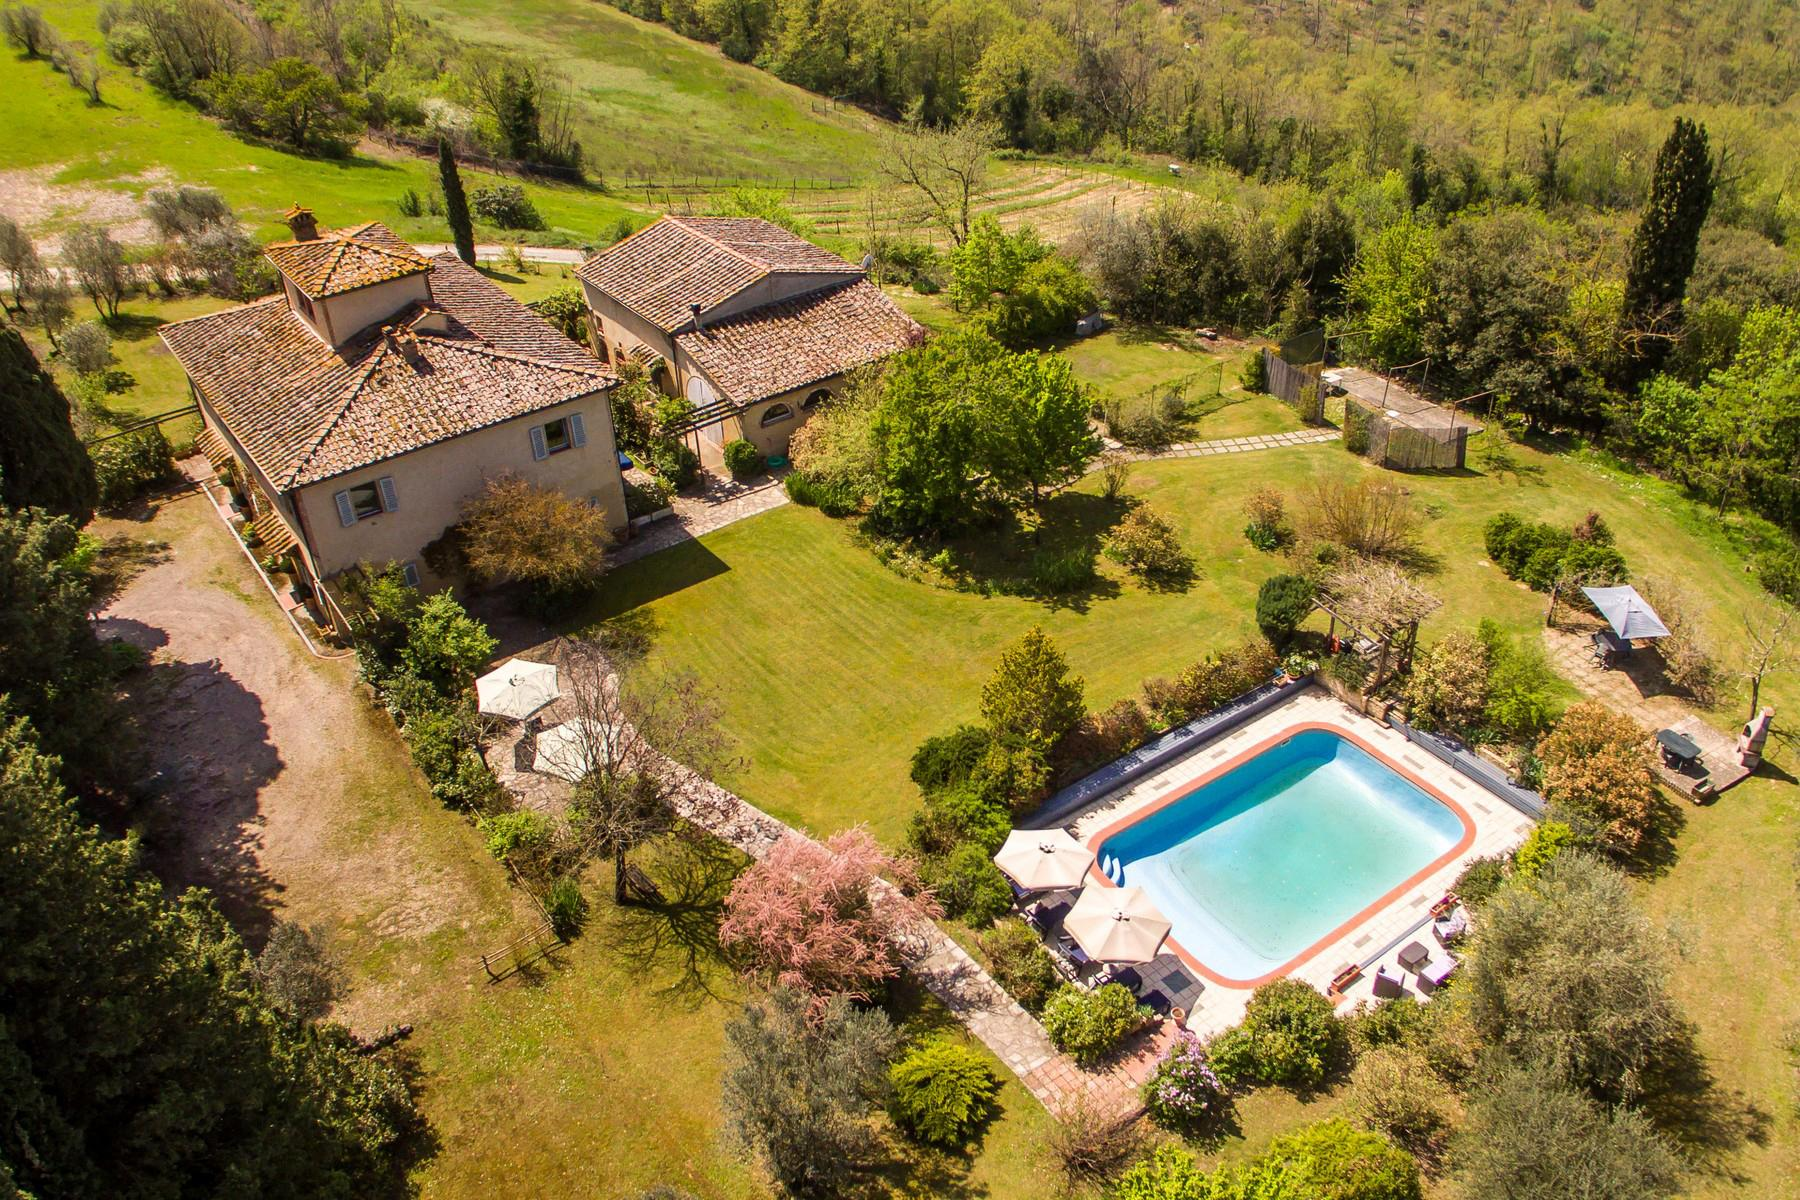 Remarkable Country house B&B with pool near San Gimignano - 1